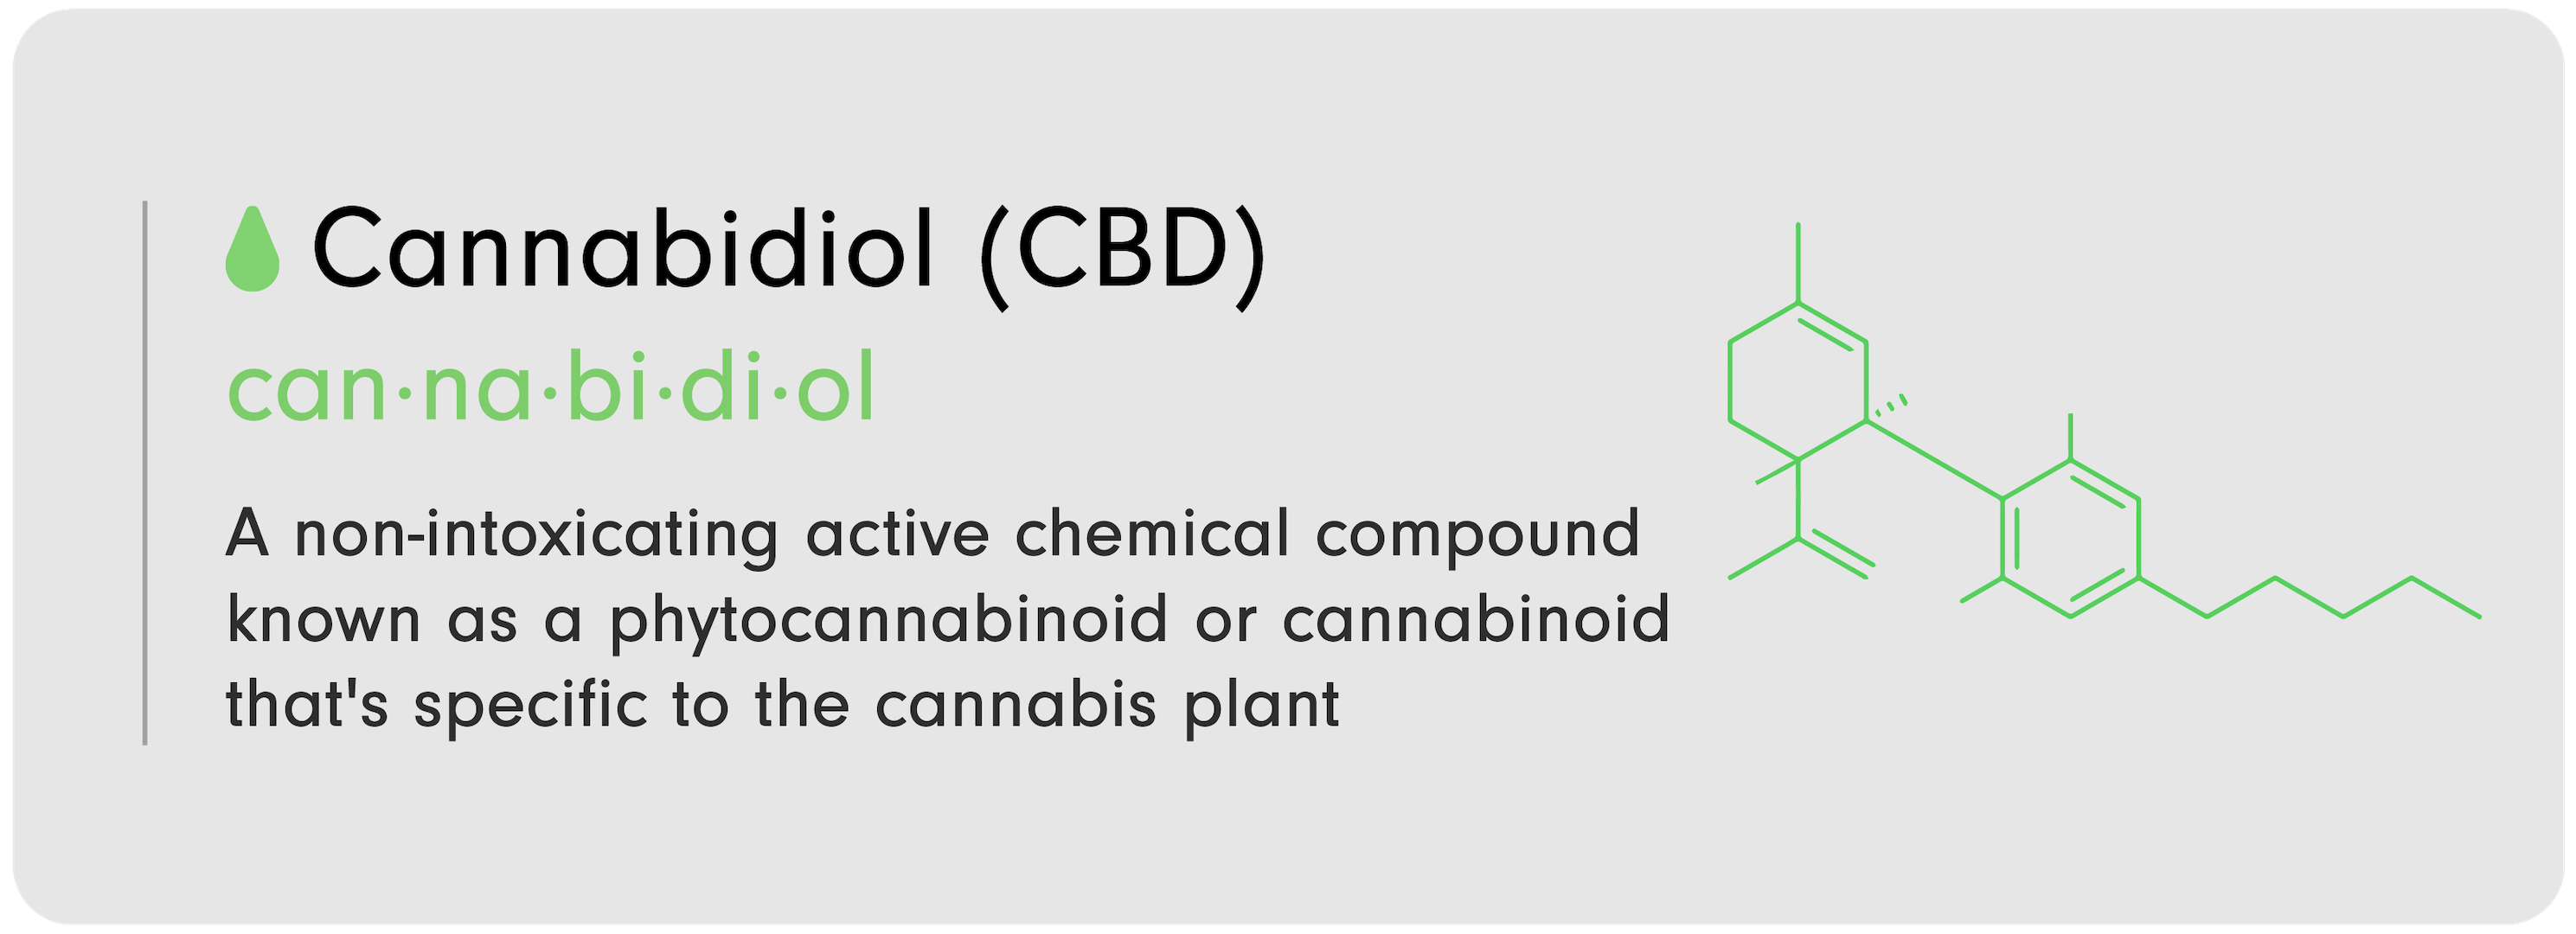 """C-D 101 infographic that reads, """"C----binoid (C-D): A non-intoxicating active chemical compound known as a phytoc----binoid or cannabinoid that's specific to the c----bis plant."""""""